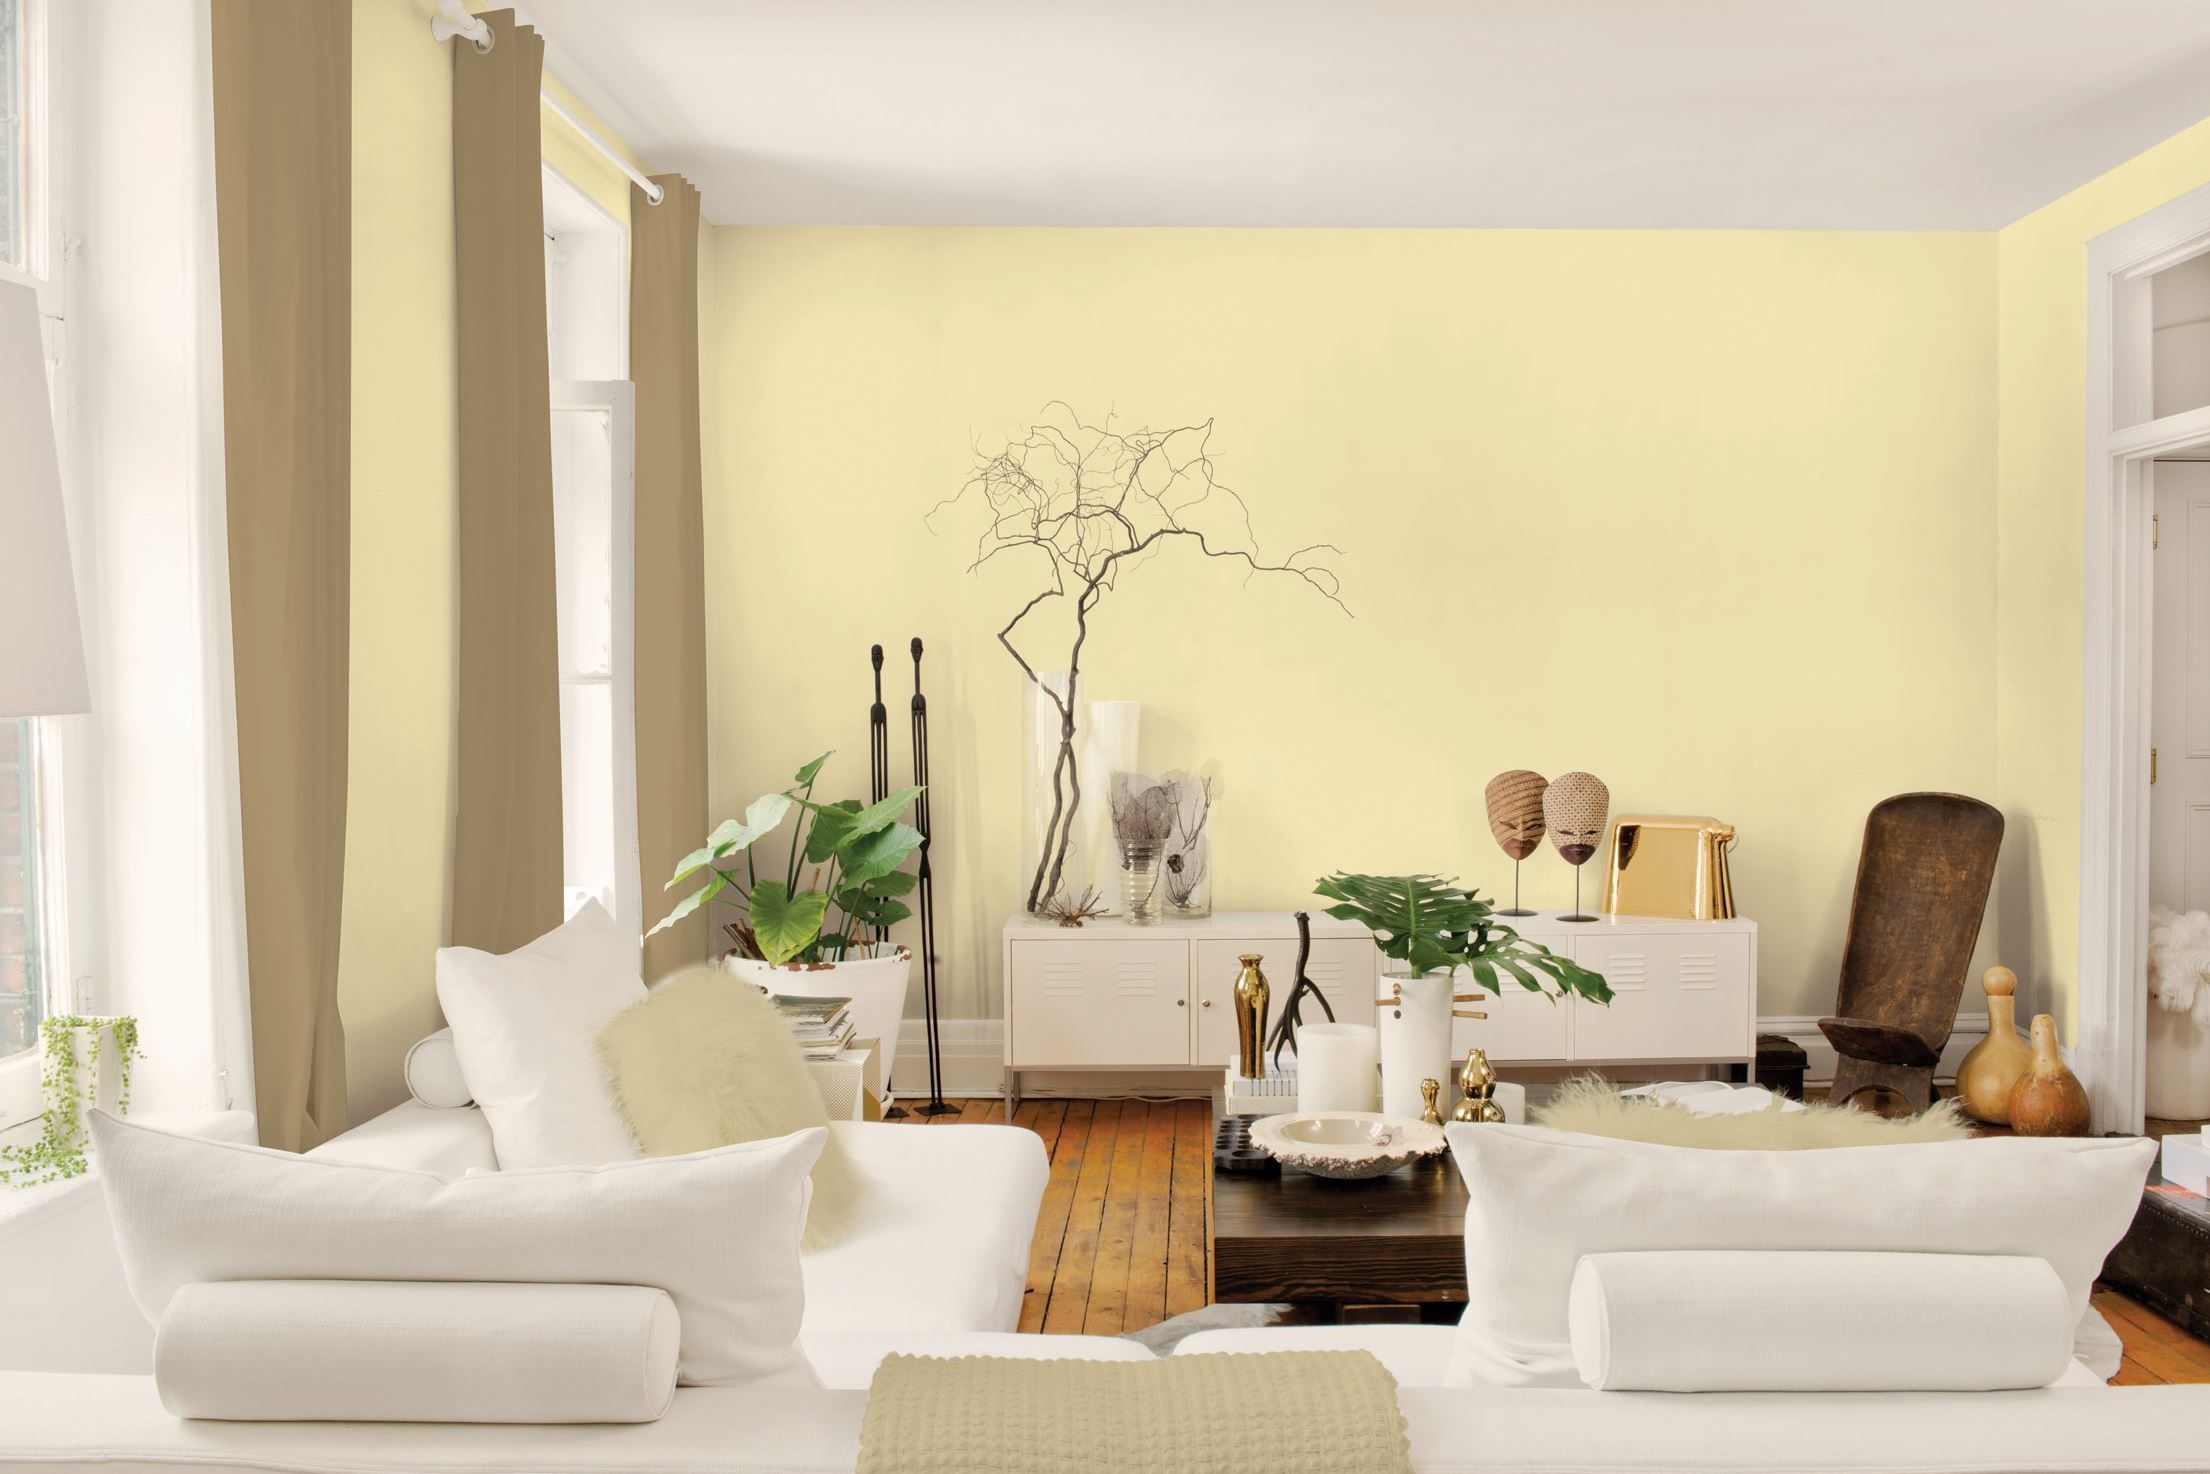 Interior paint color schemes living room - Living Room Paint Inspirations On Paint Colors For Walls Http Midcityeast Com Inspirations